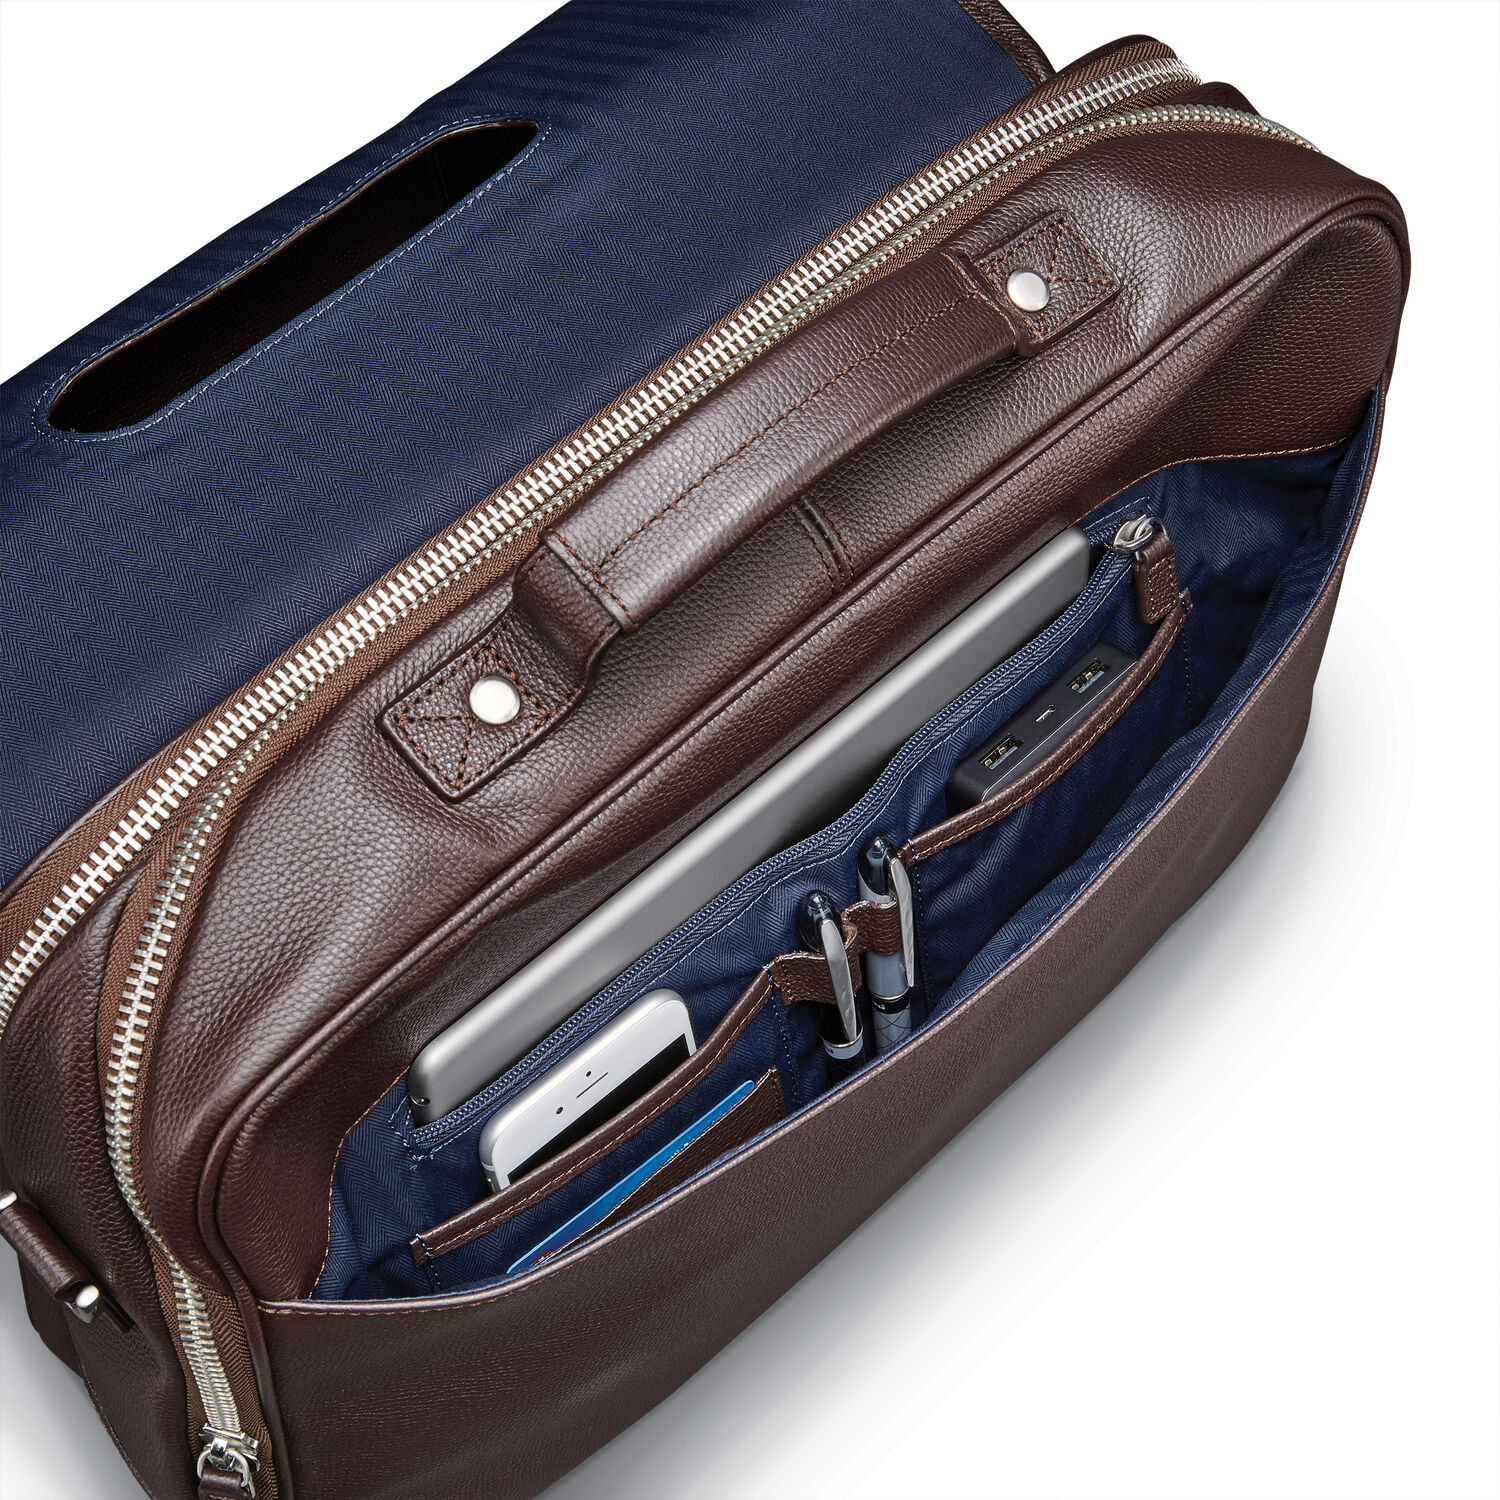 9e655bb66d7 Samsonite Mens Leather Classic Flap Briefcase in the color Dark Brown.